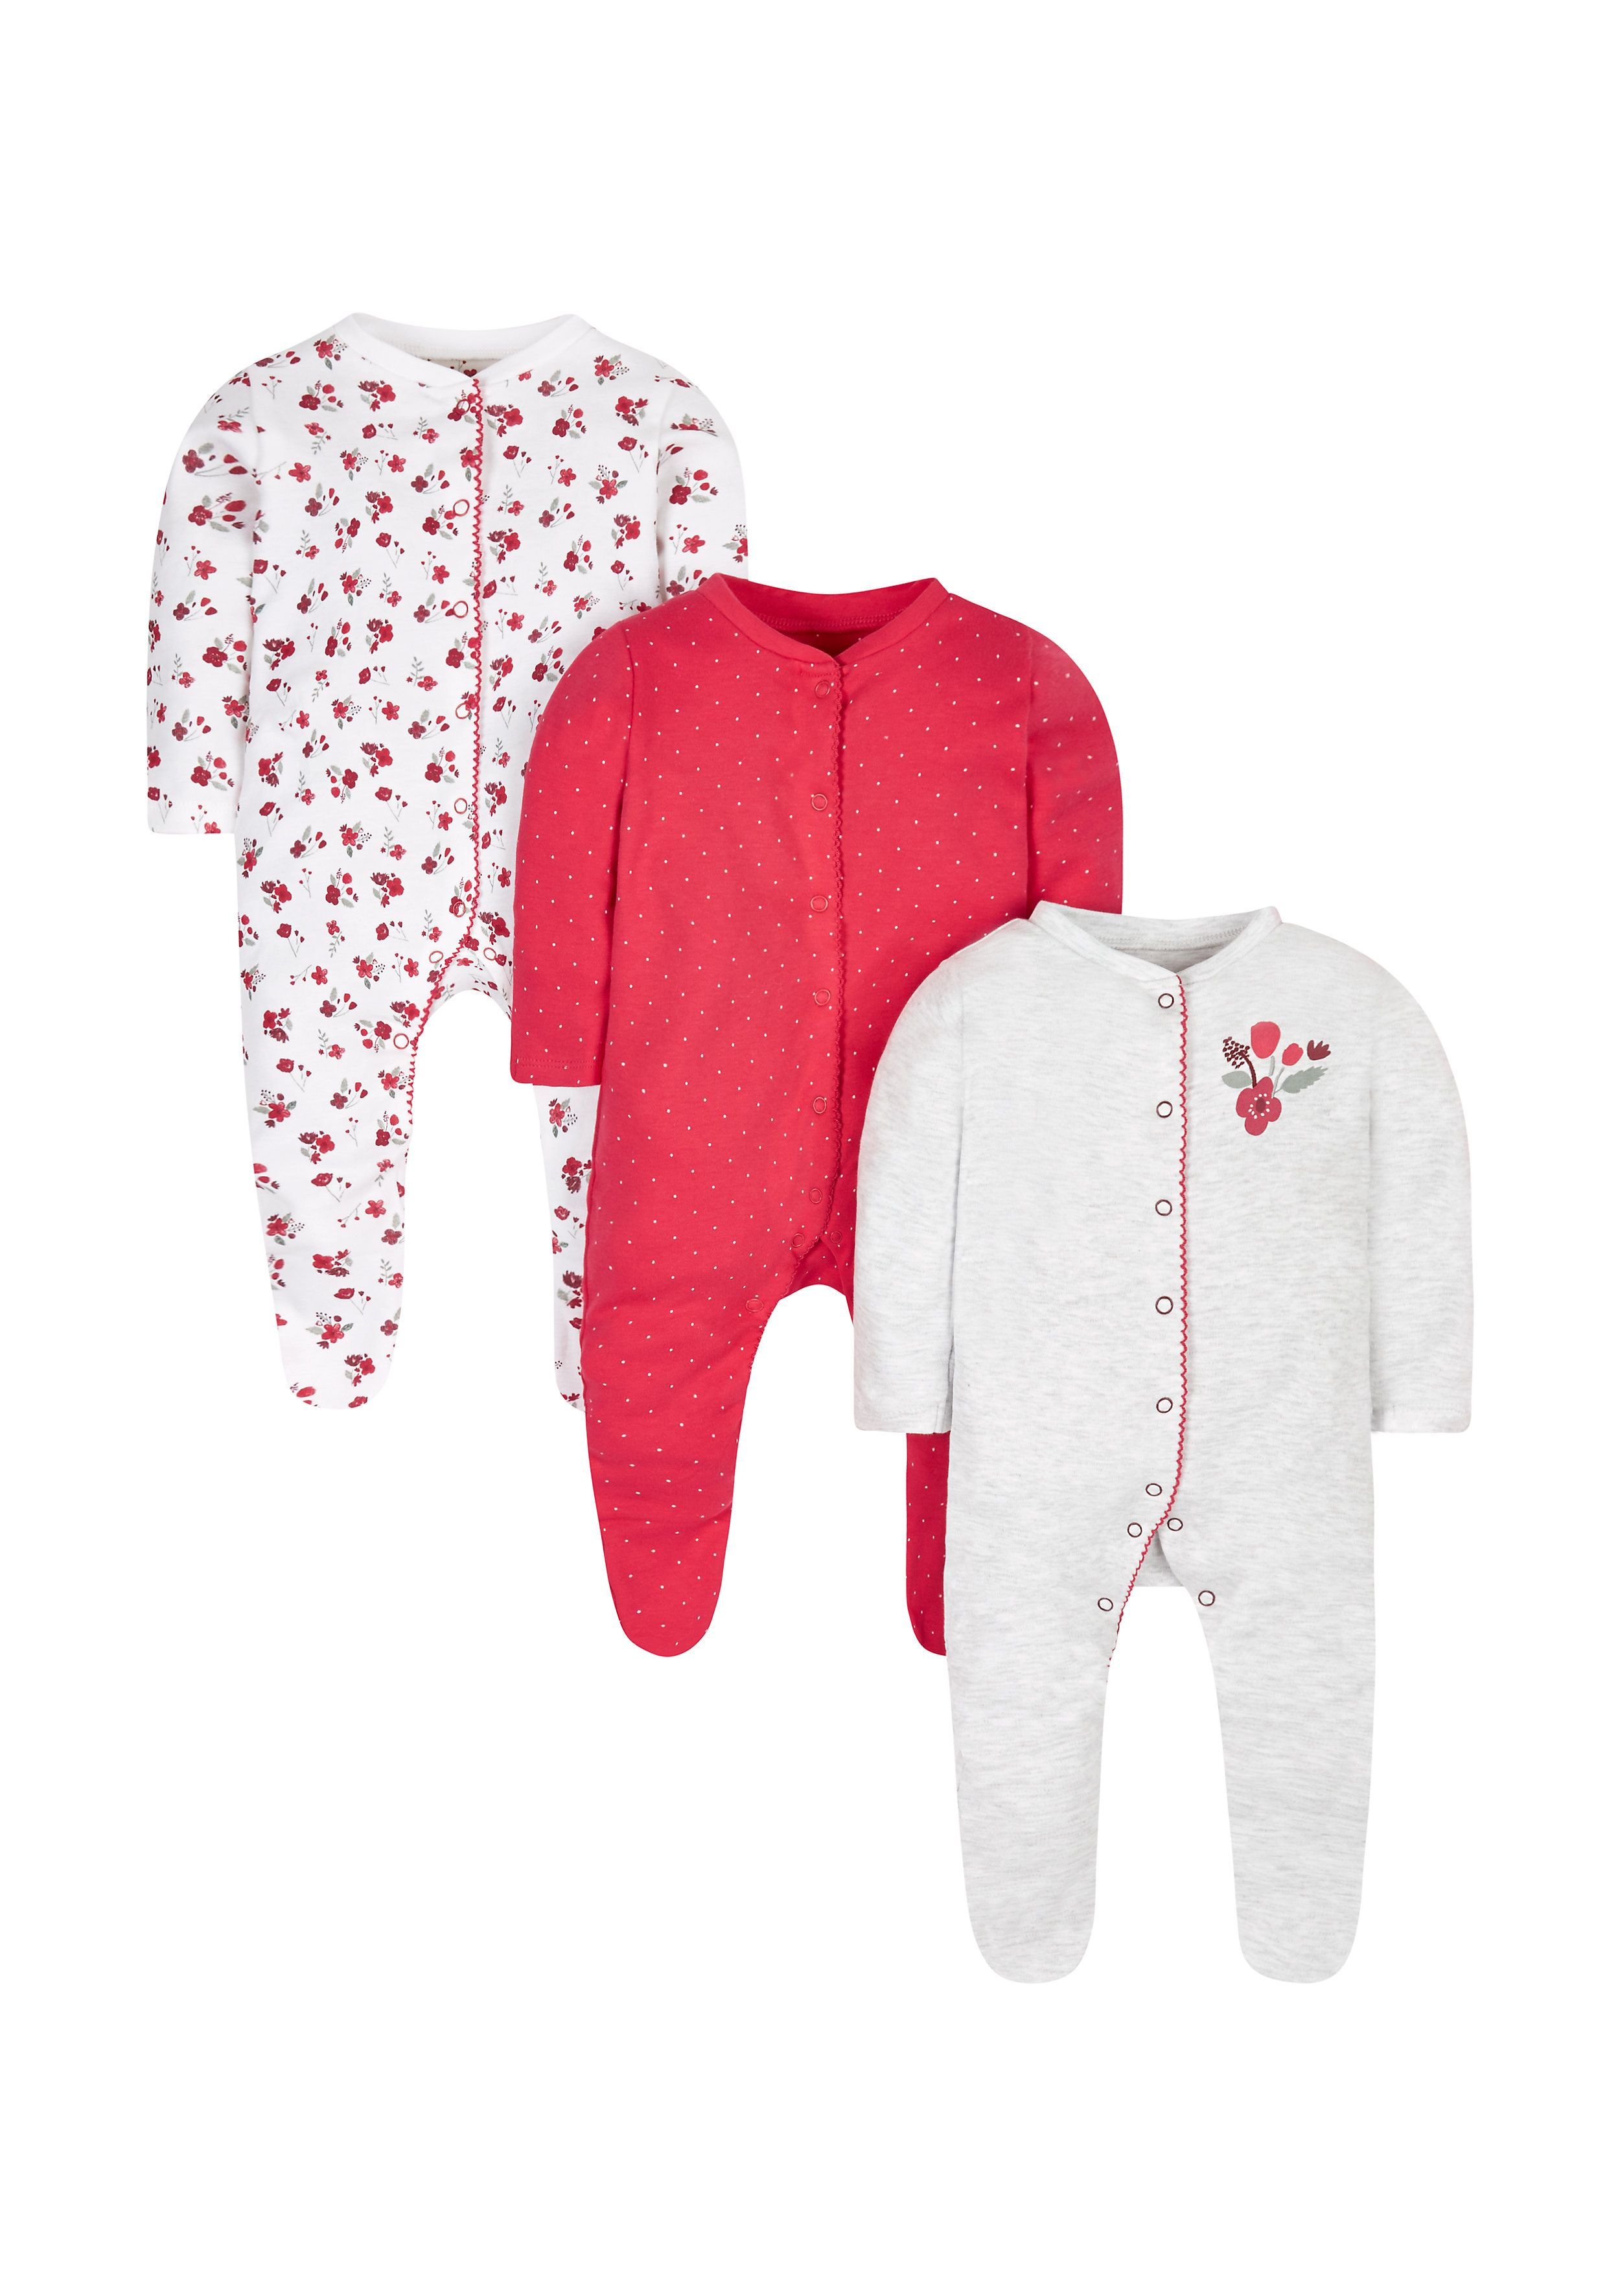 Mothercare | Floral And Bunny Sleepsuits - 3 Pack